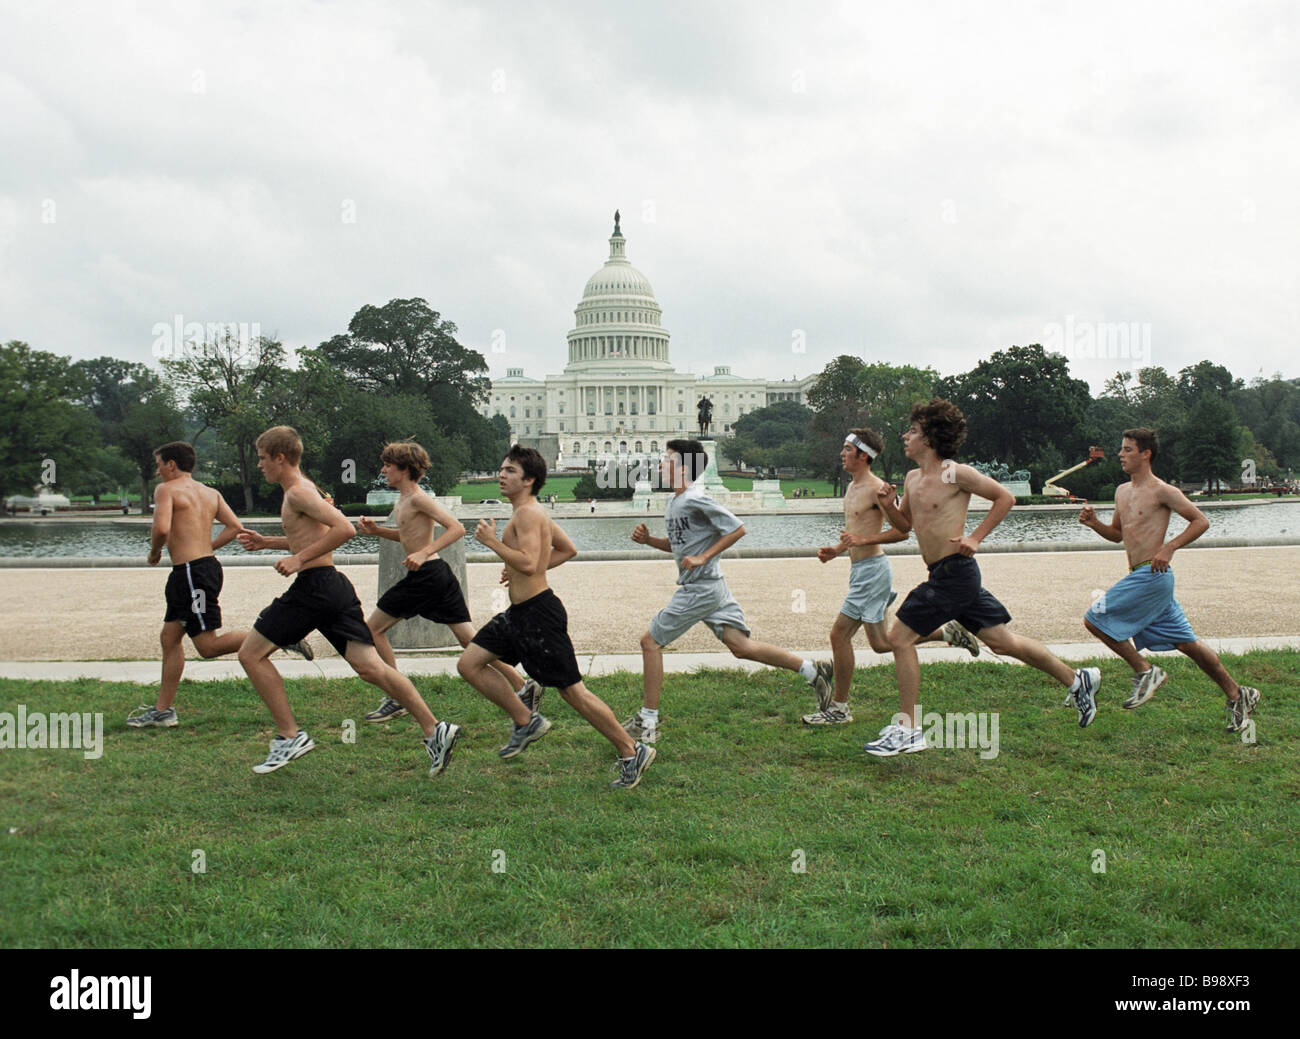 Washington dwellers in a park in front of the Capitol - Stock Image